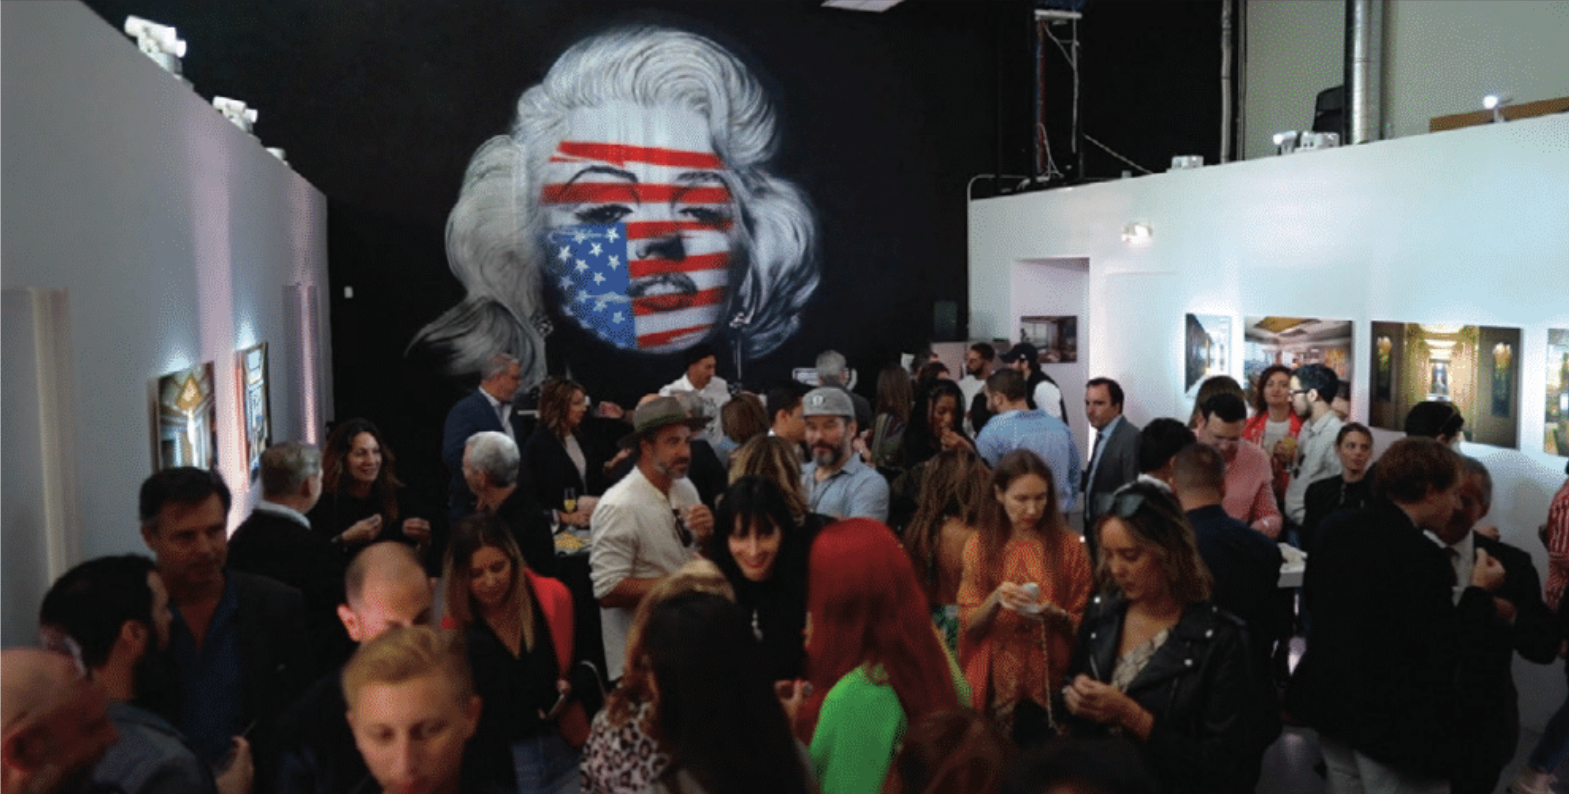 Modern Luxury Interiors and Shorecrest Construction host Art Basel Event in Wynwood